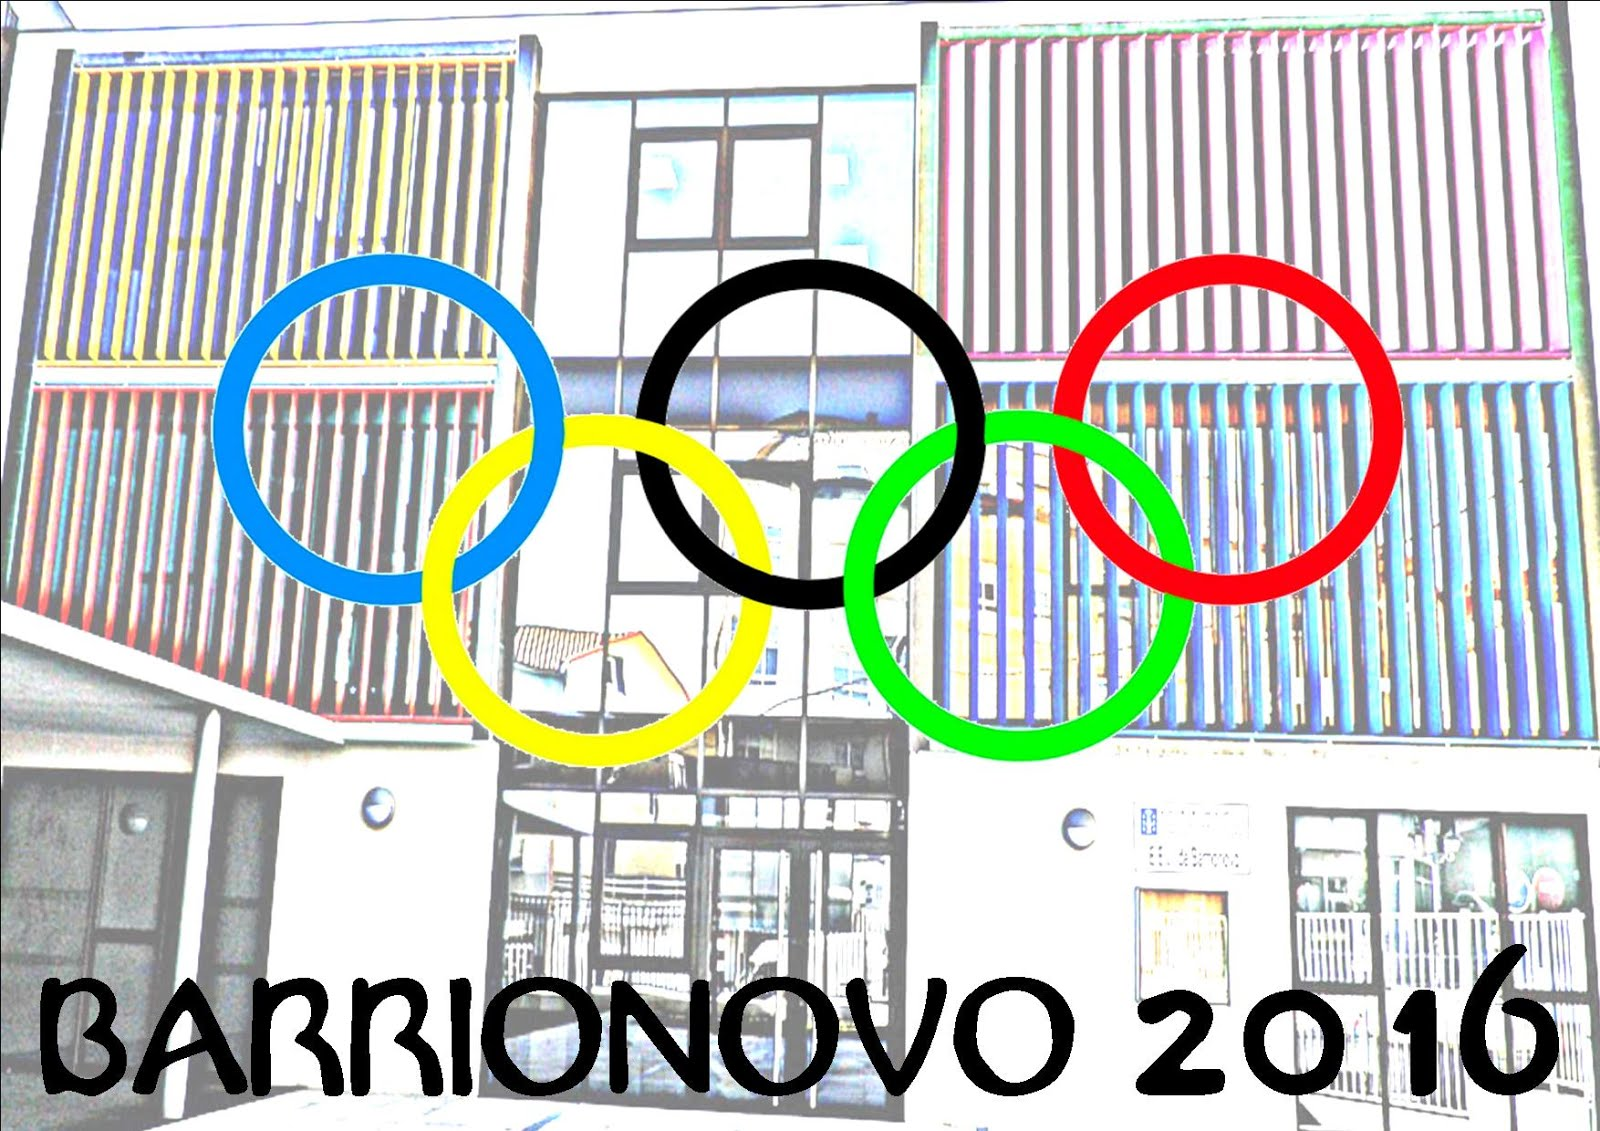 BARRIONOVO 2016